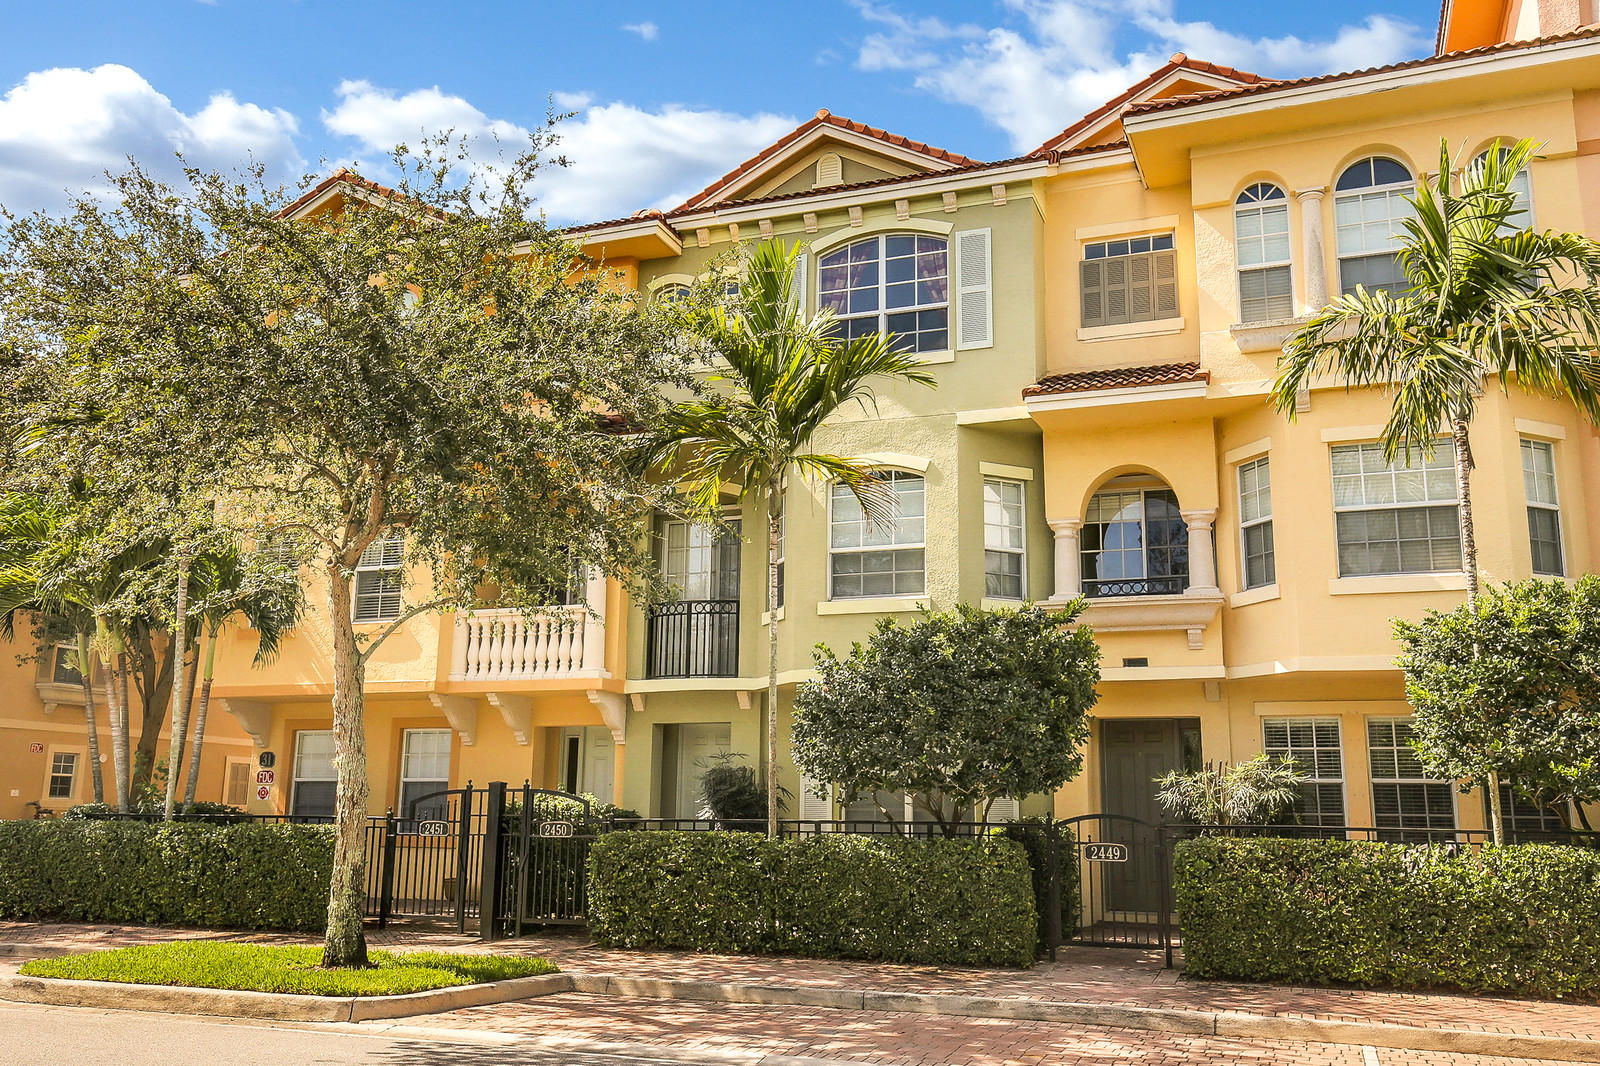 New Home for sale at 2450 San Pietro Circle in Palm Beach Gardens